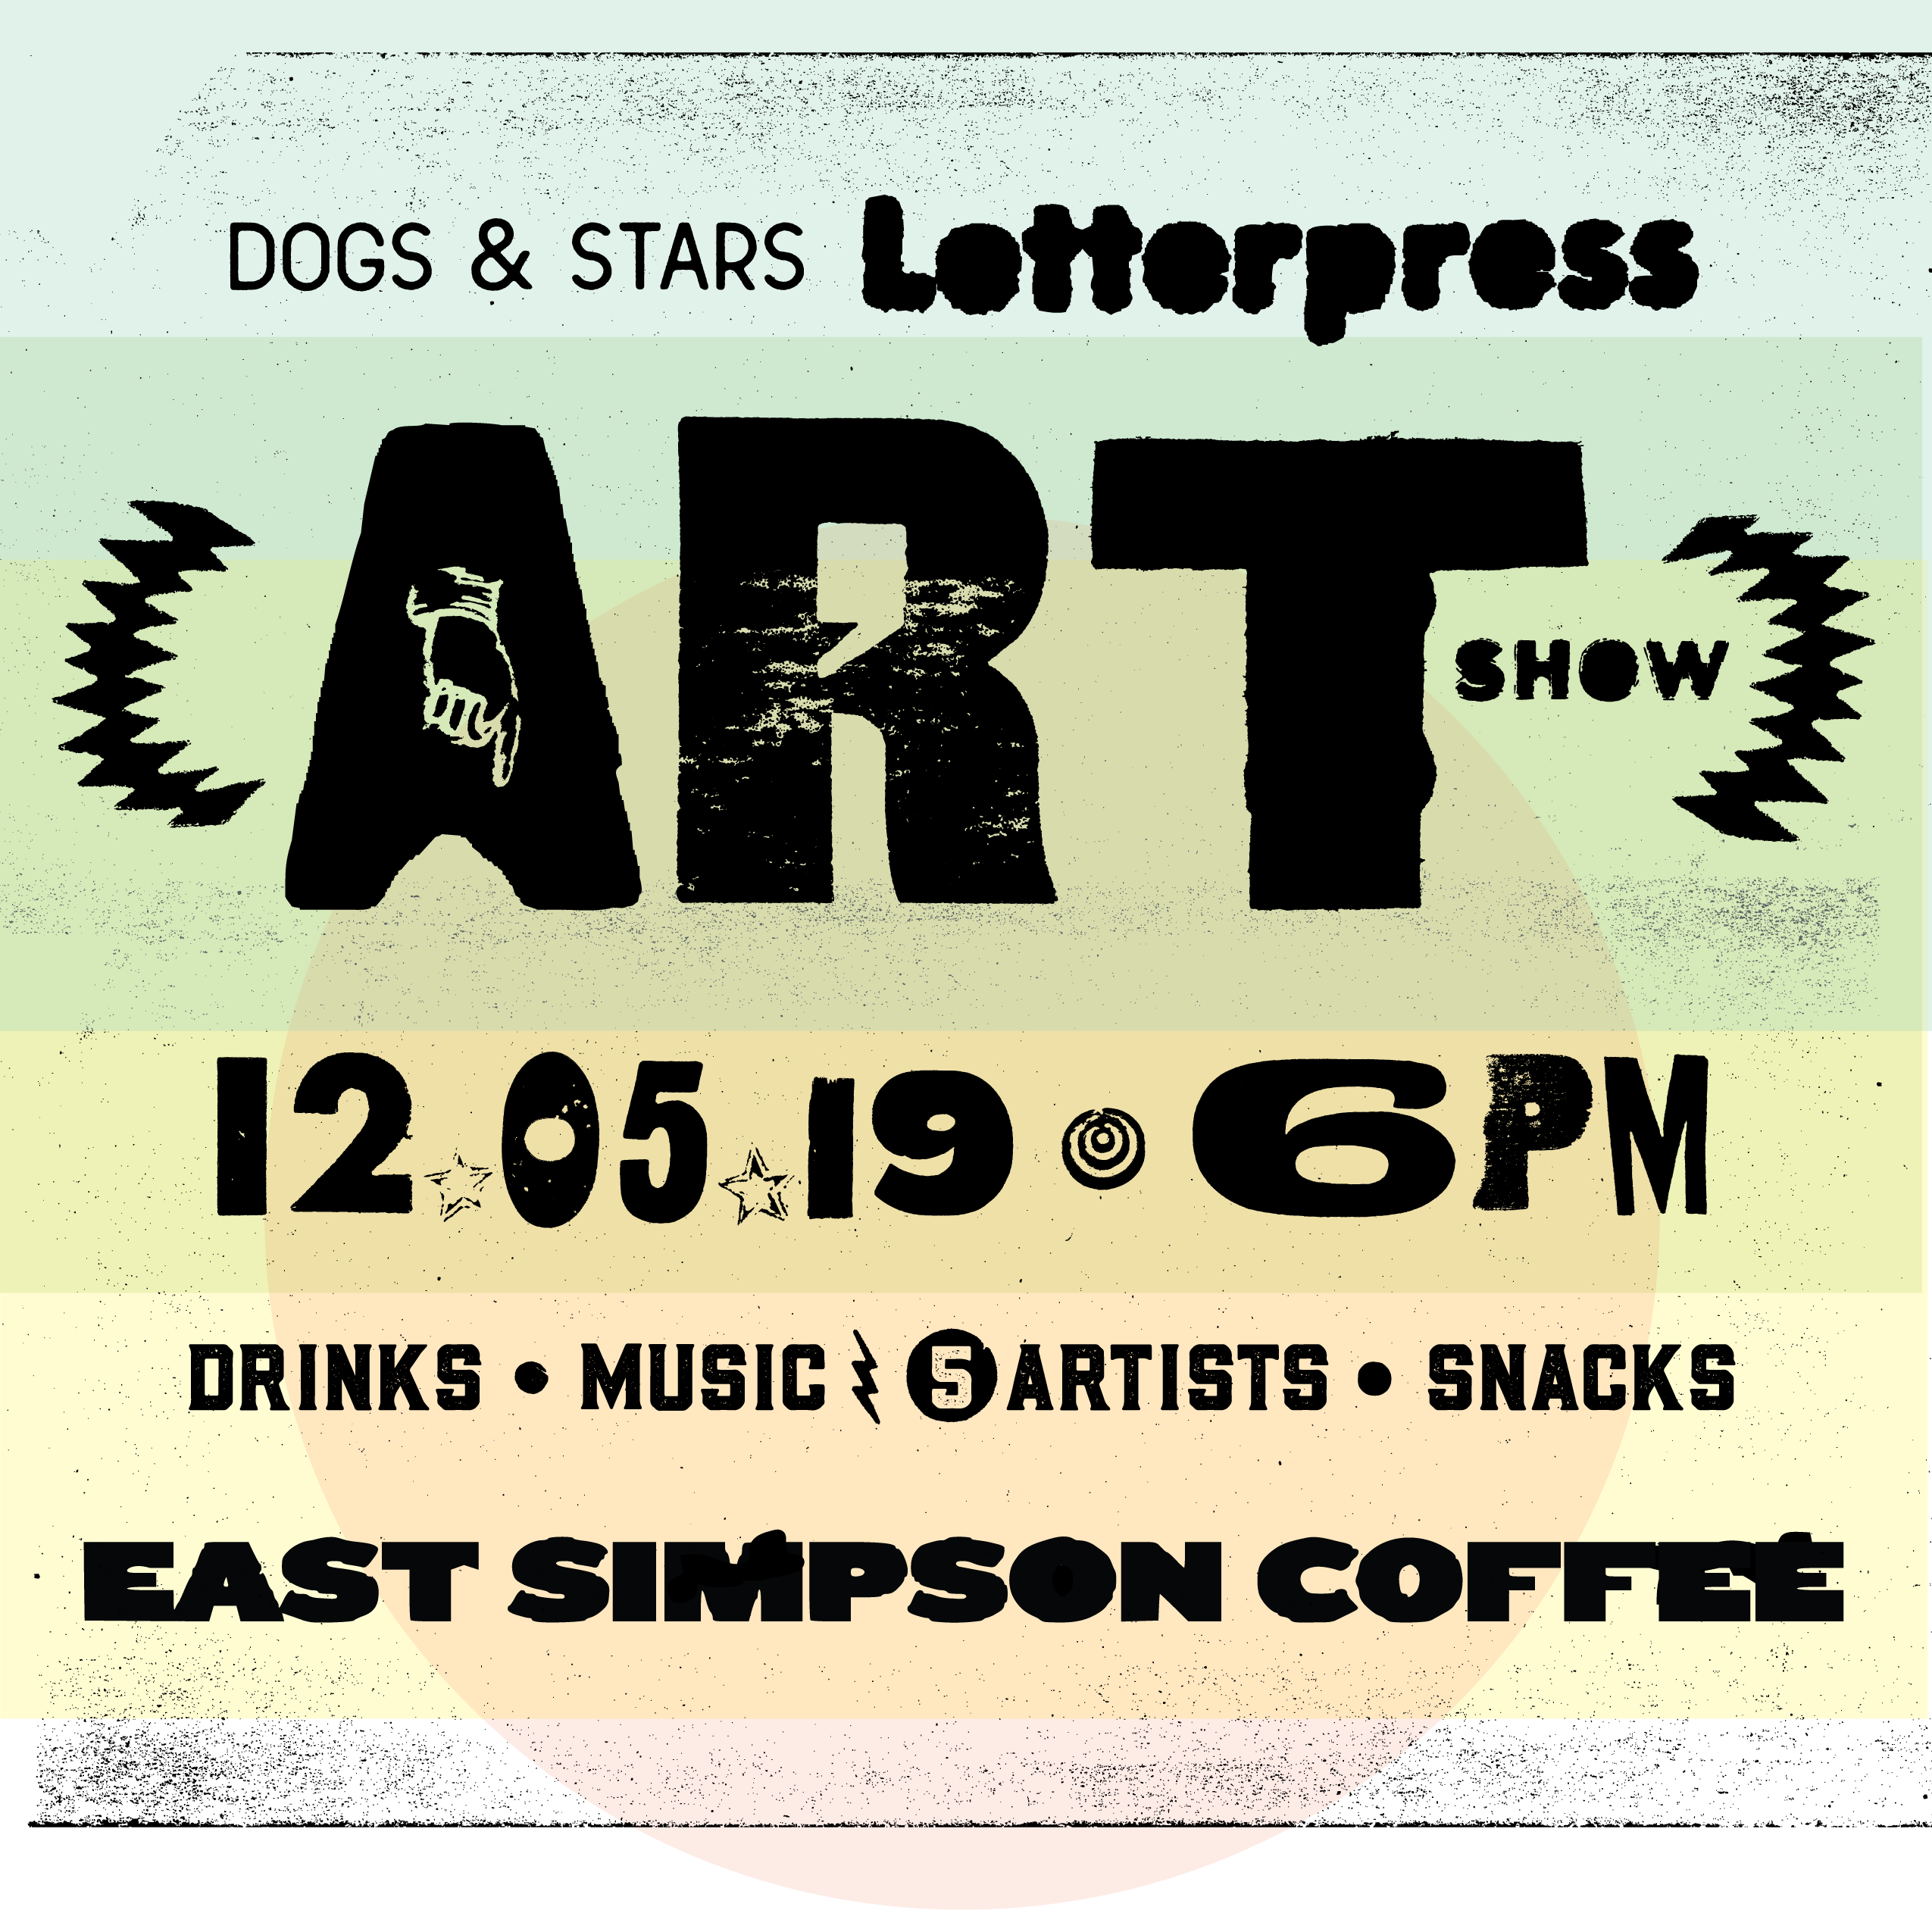 letterpress art show print isn't dead east simpson coffee company dogs and stars calling cards business cards